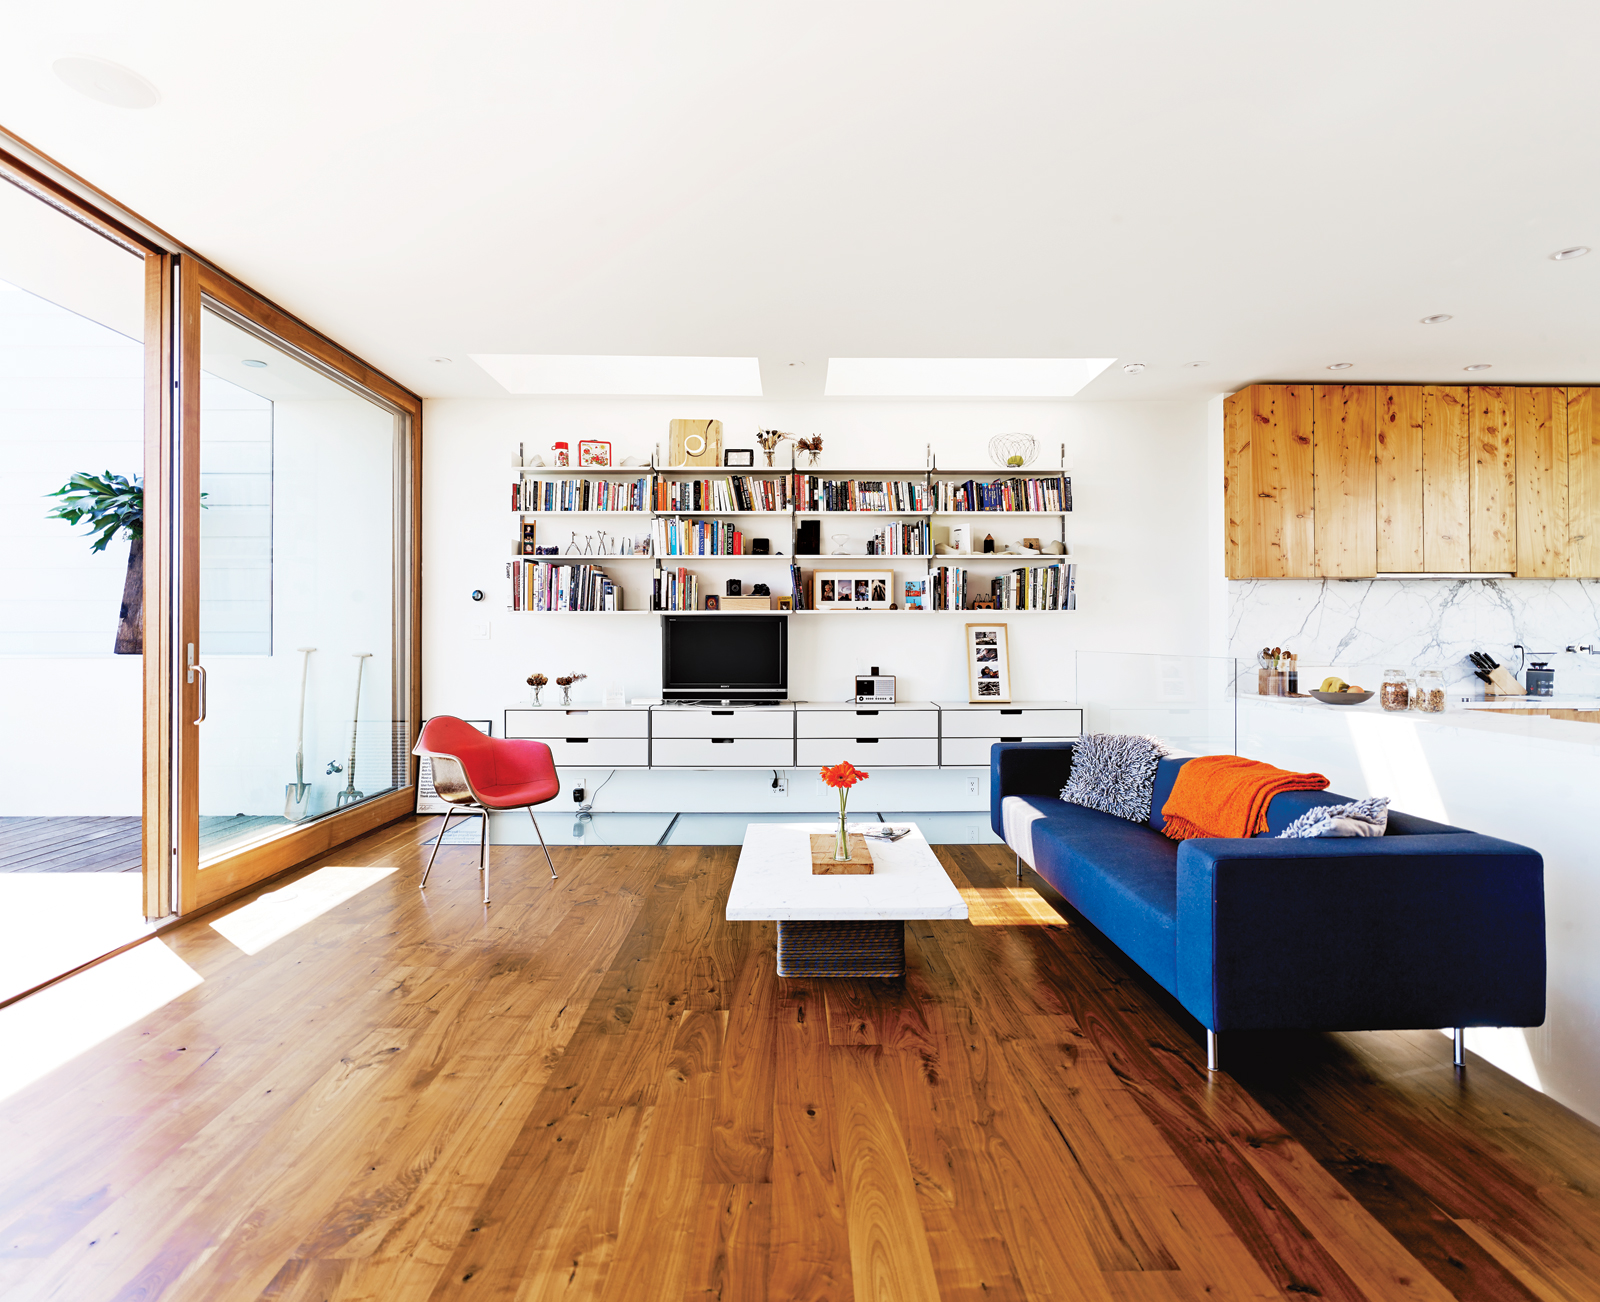 Modern living room with wooden floors and natural lighting